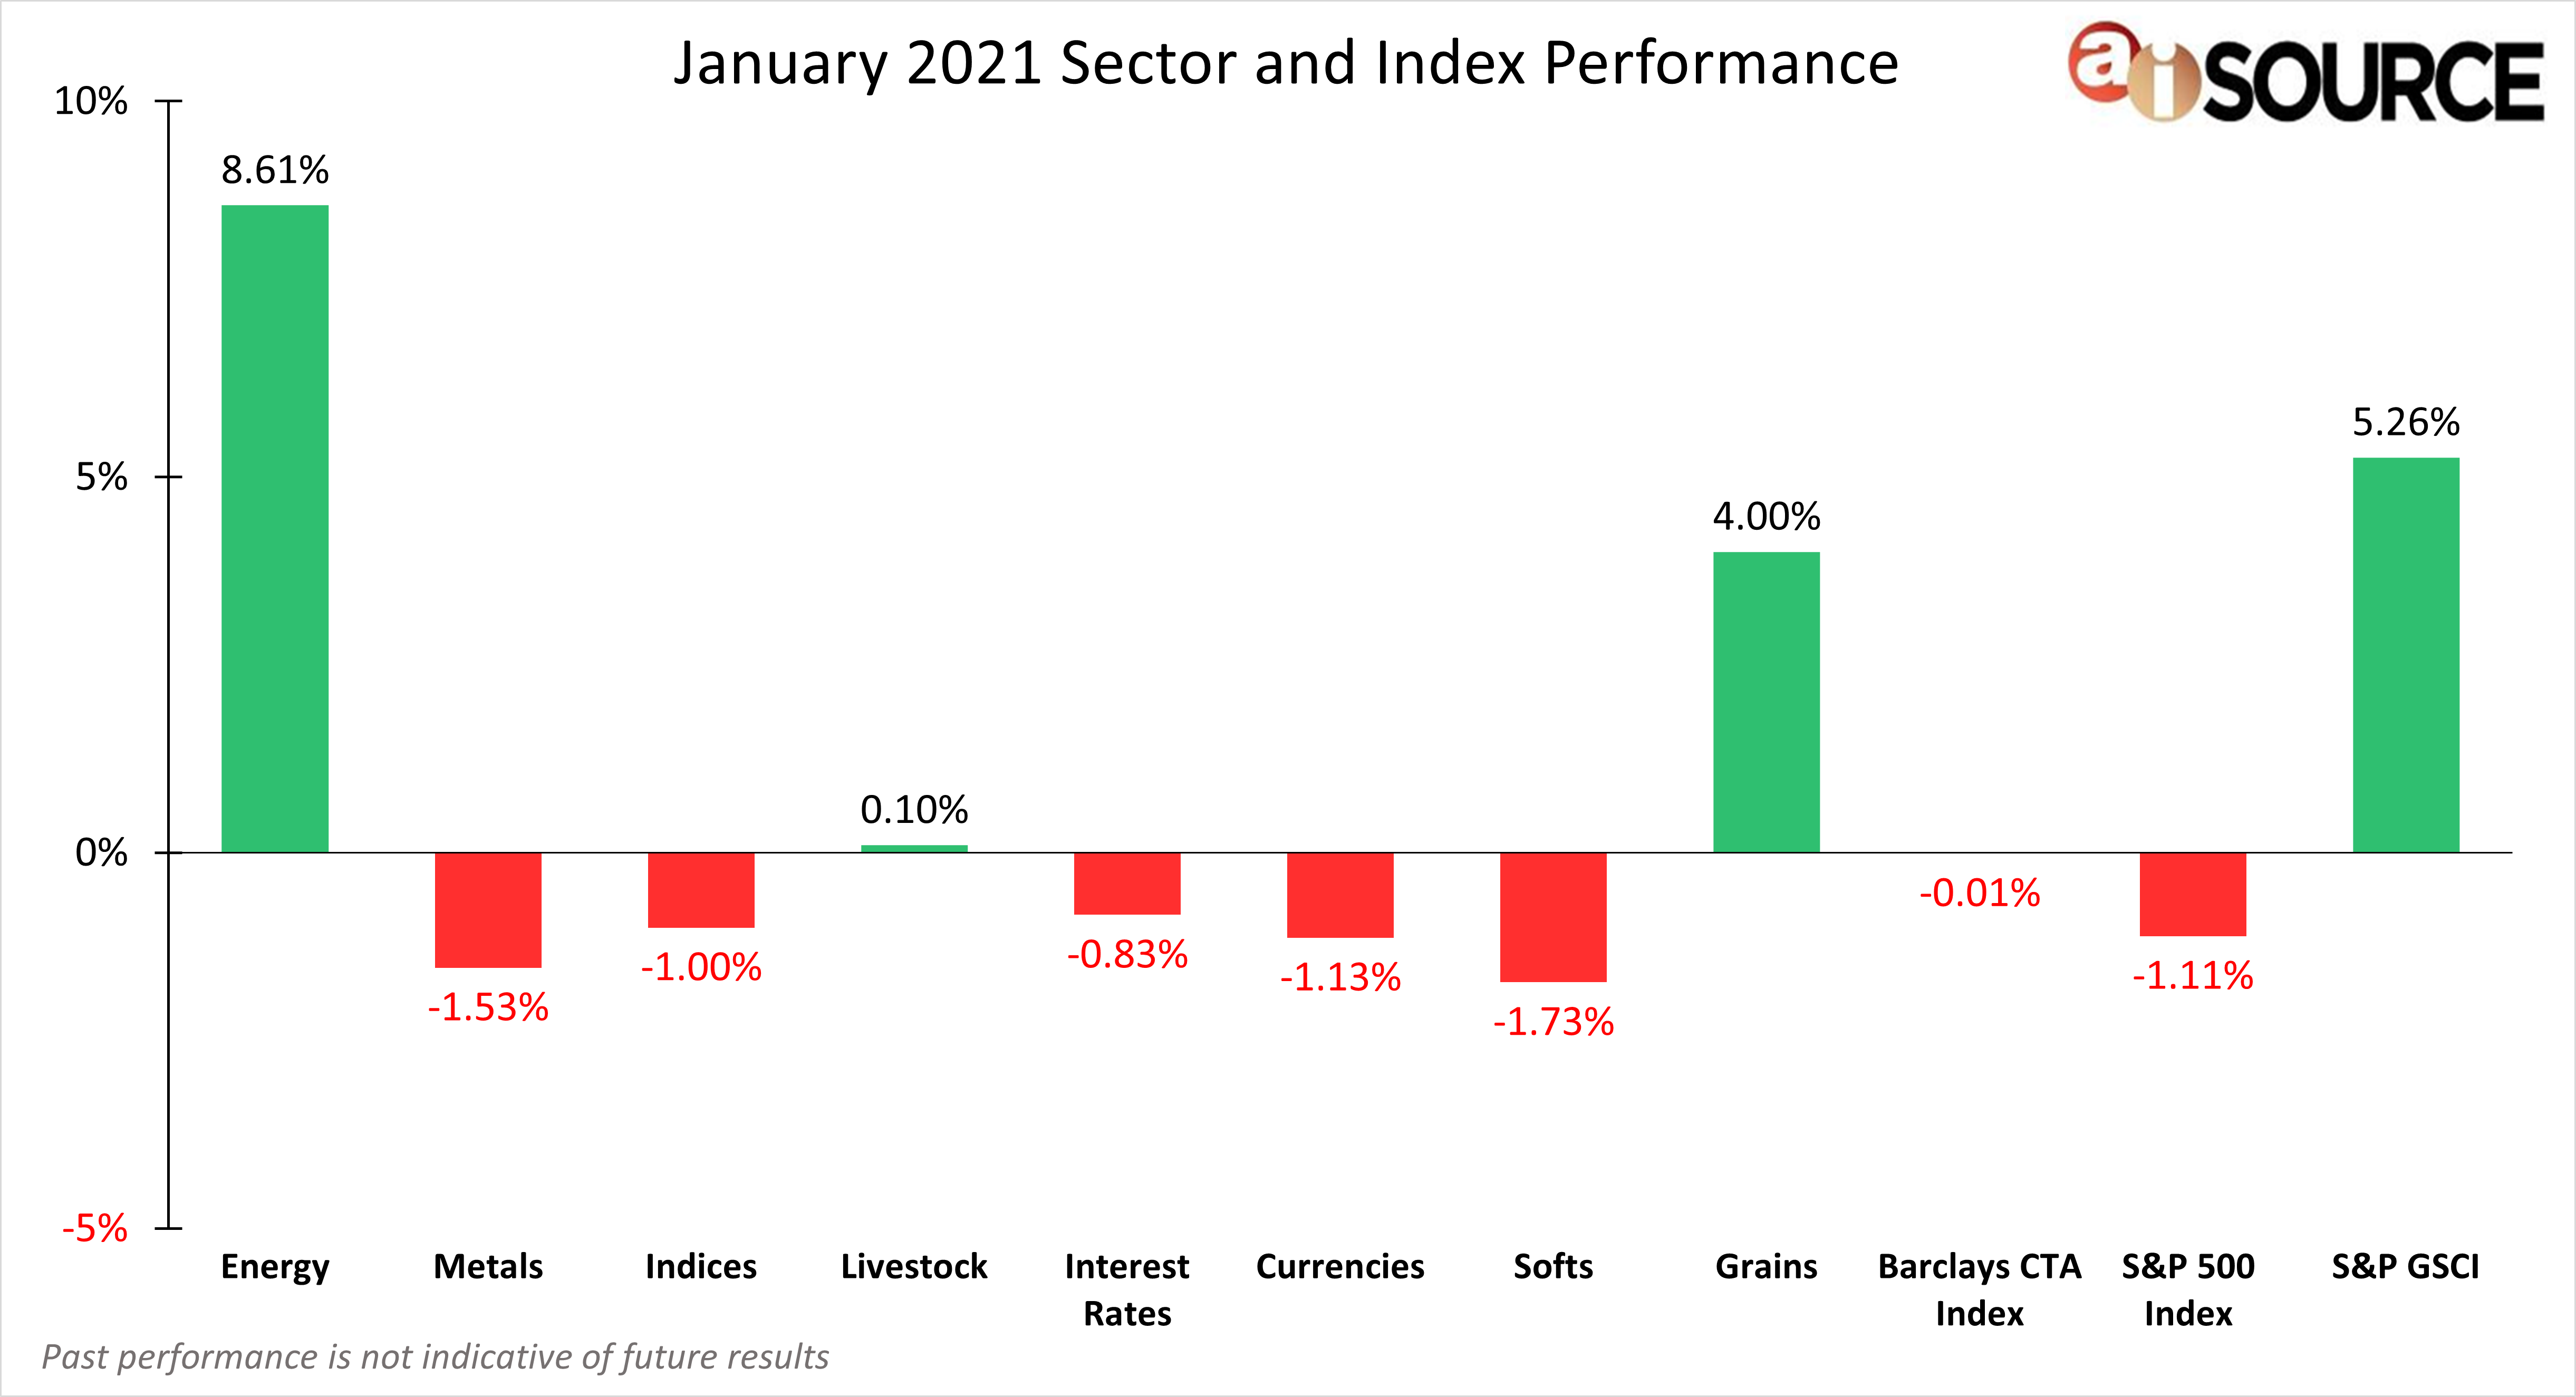 January 2021 Sector and Index Performance